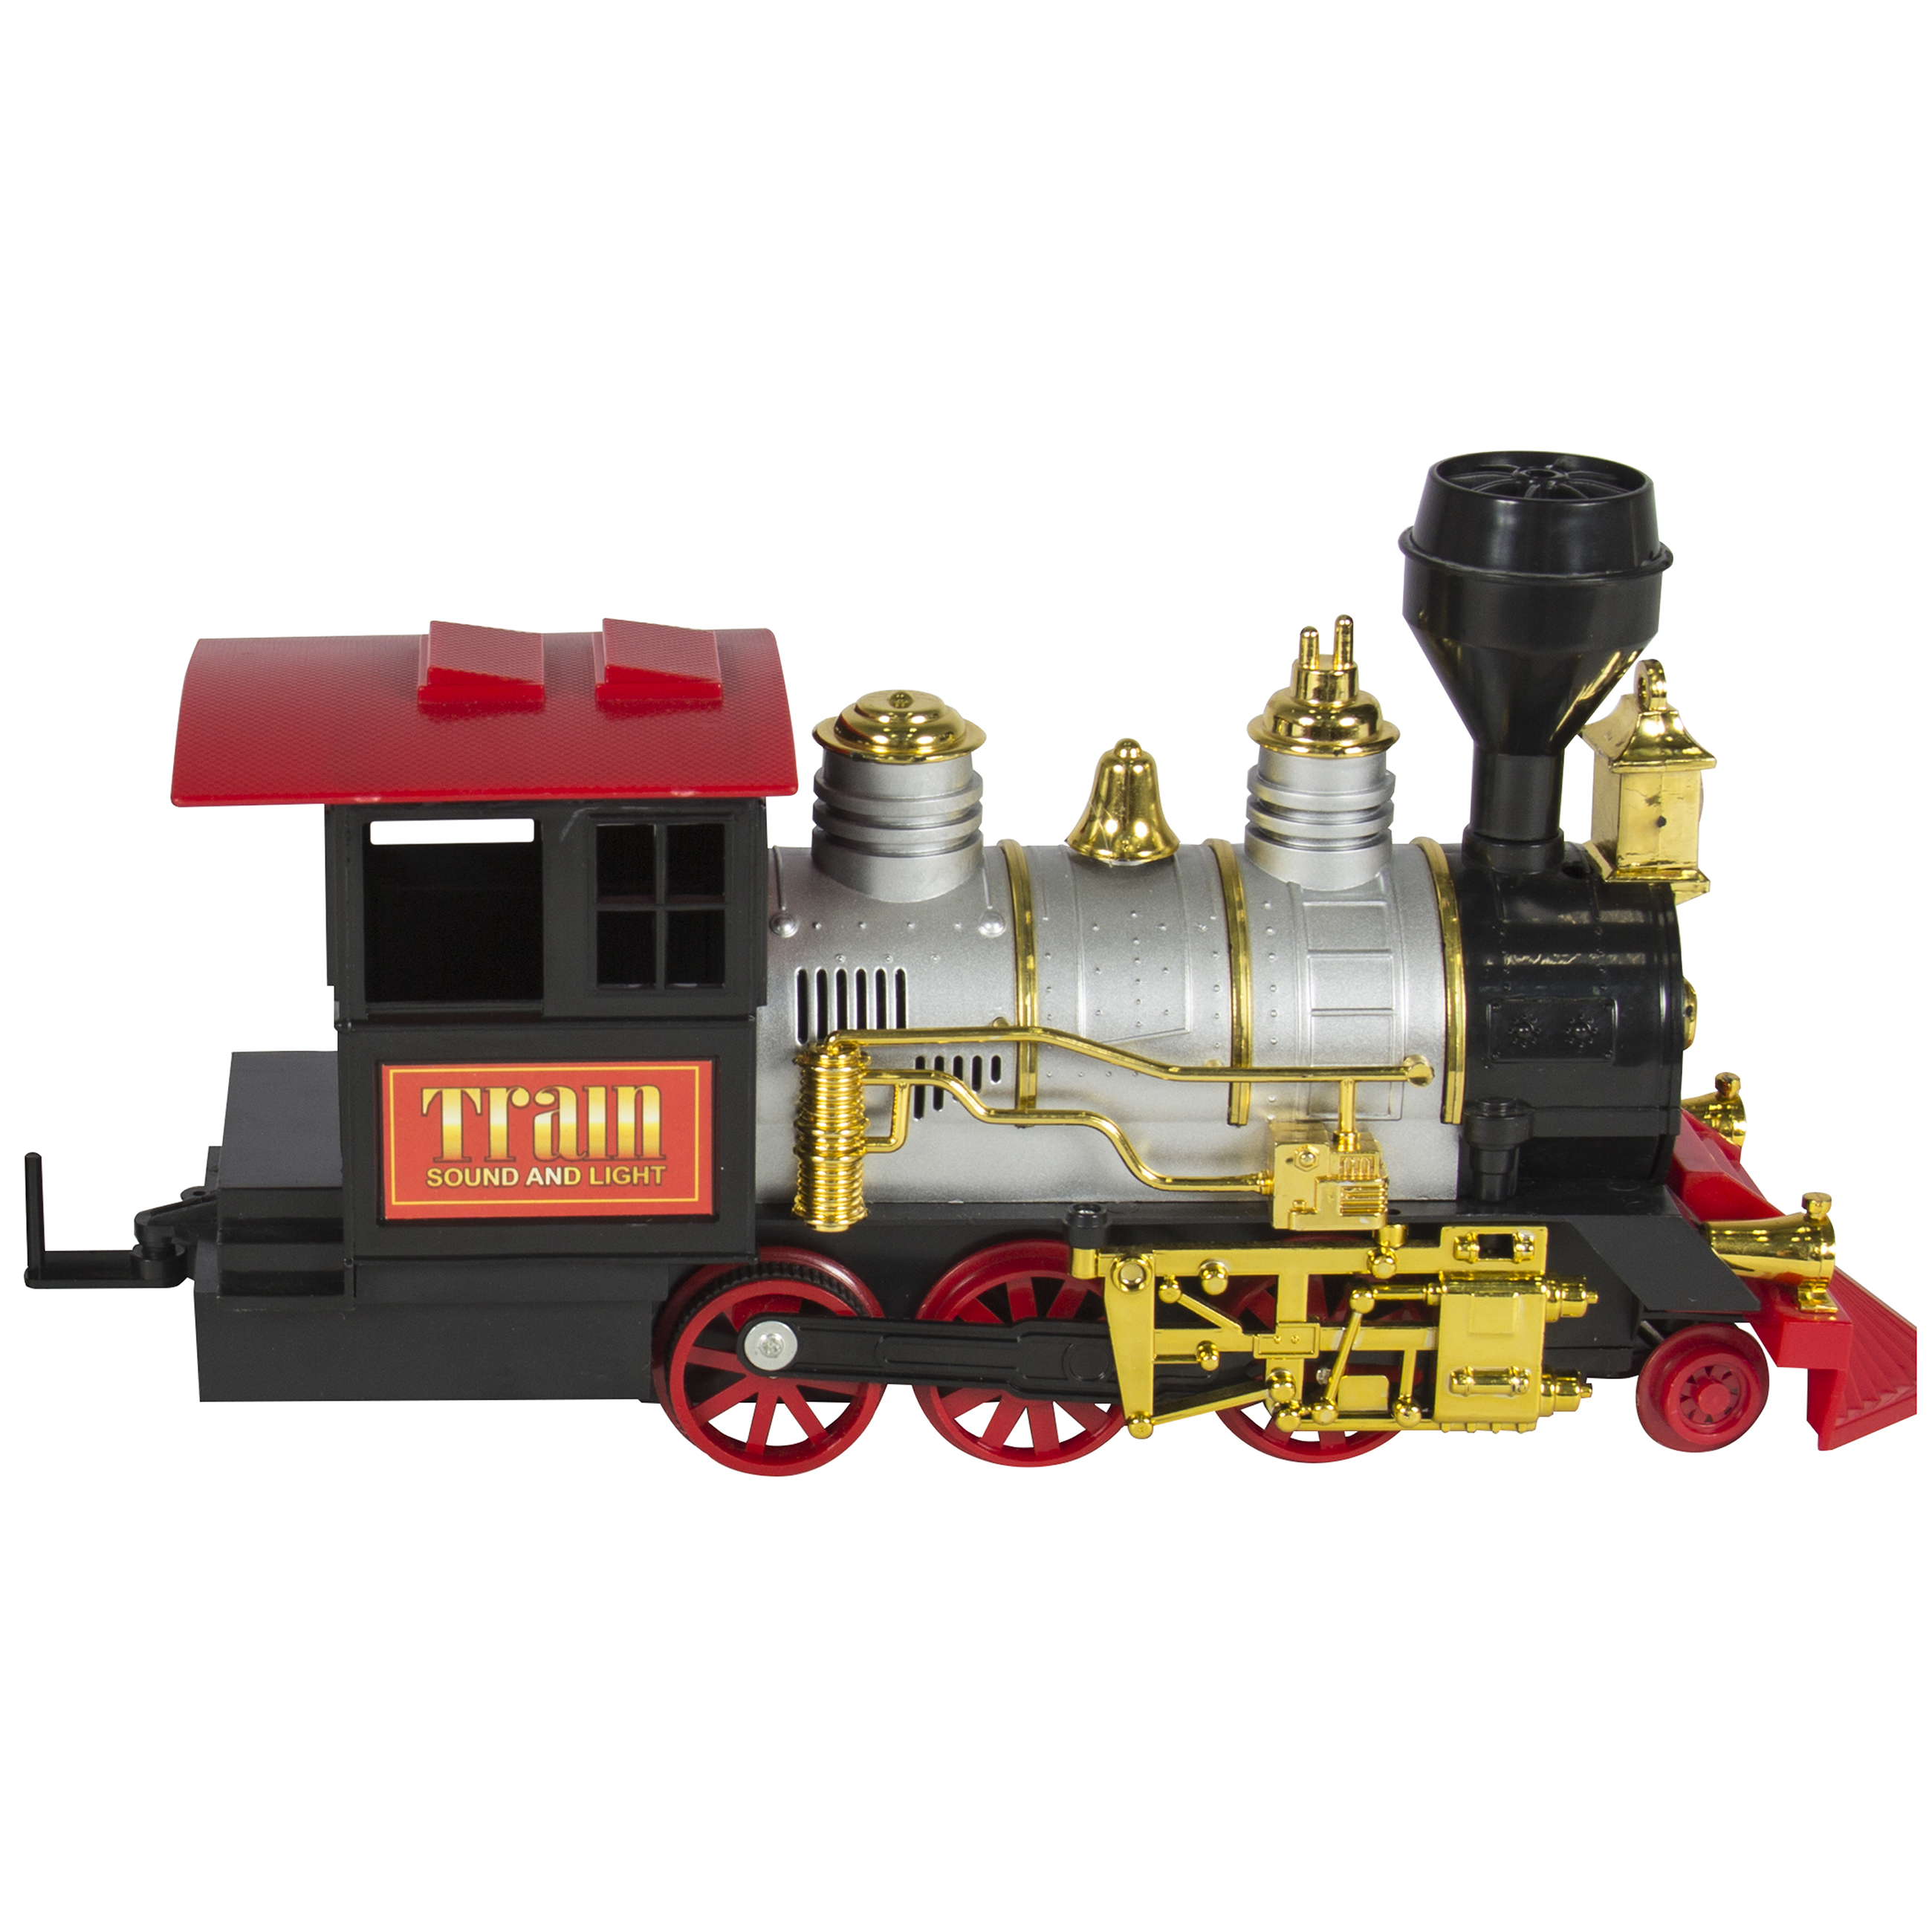 Best Choice Products Classic Train Set For Kids With Real Smoke Fashion Model Railroading Electronics That Electronic Music And Lights Battery Operated Railway Car